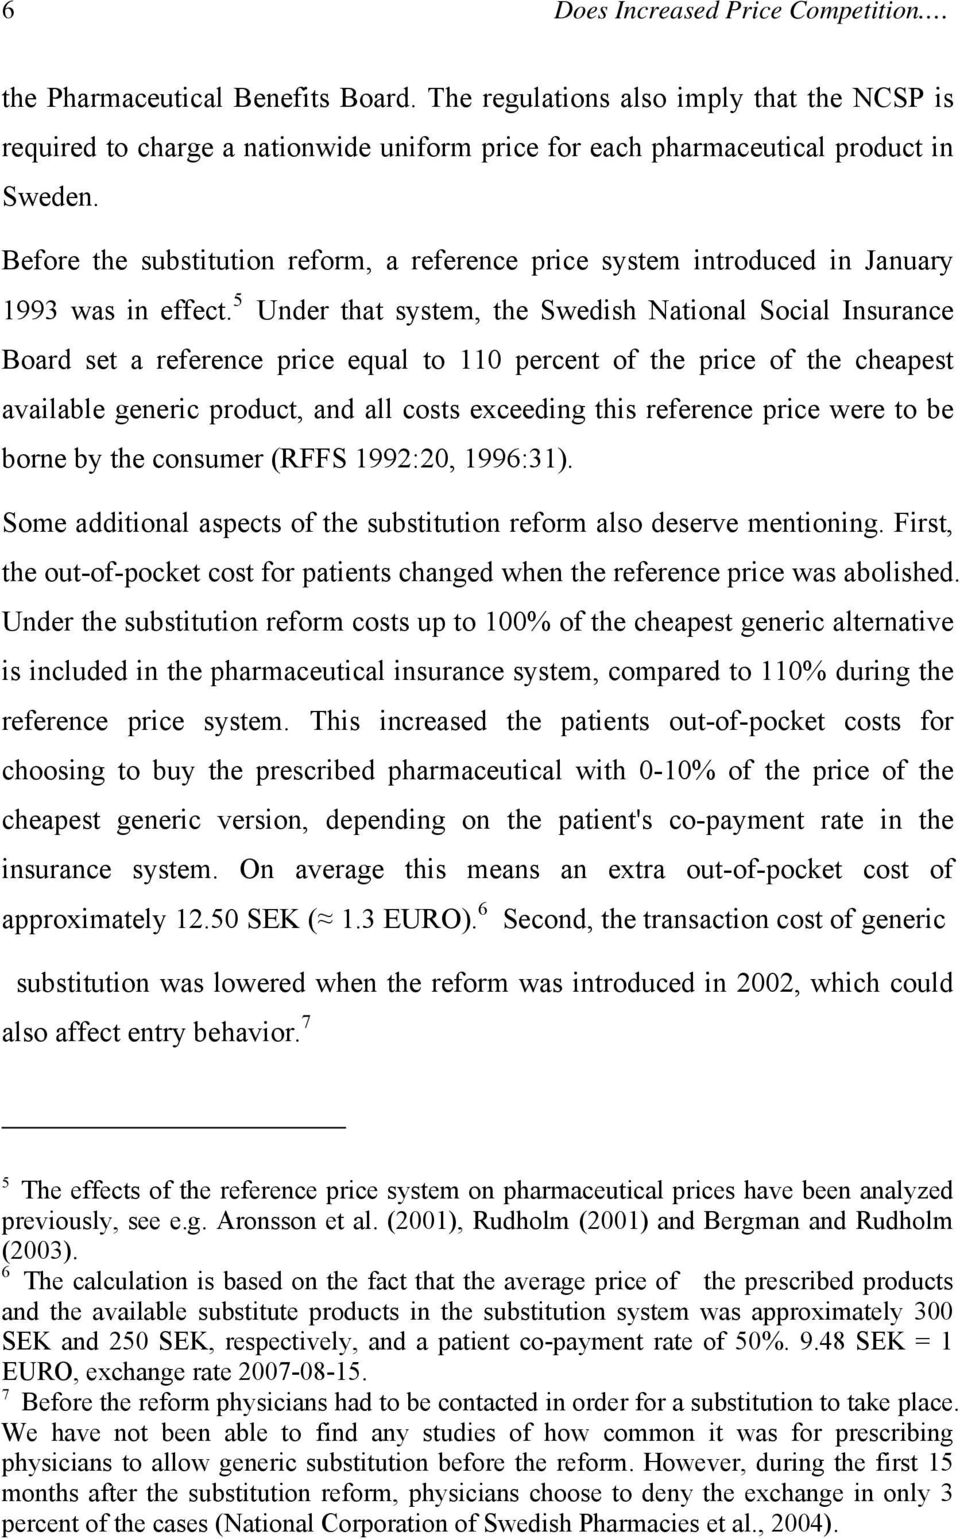 Before the substitution reform, a reference price system introduced in January 1993 was in effect.